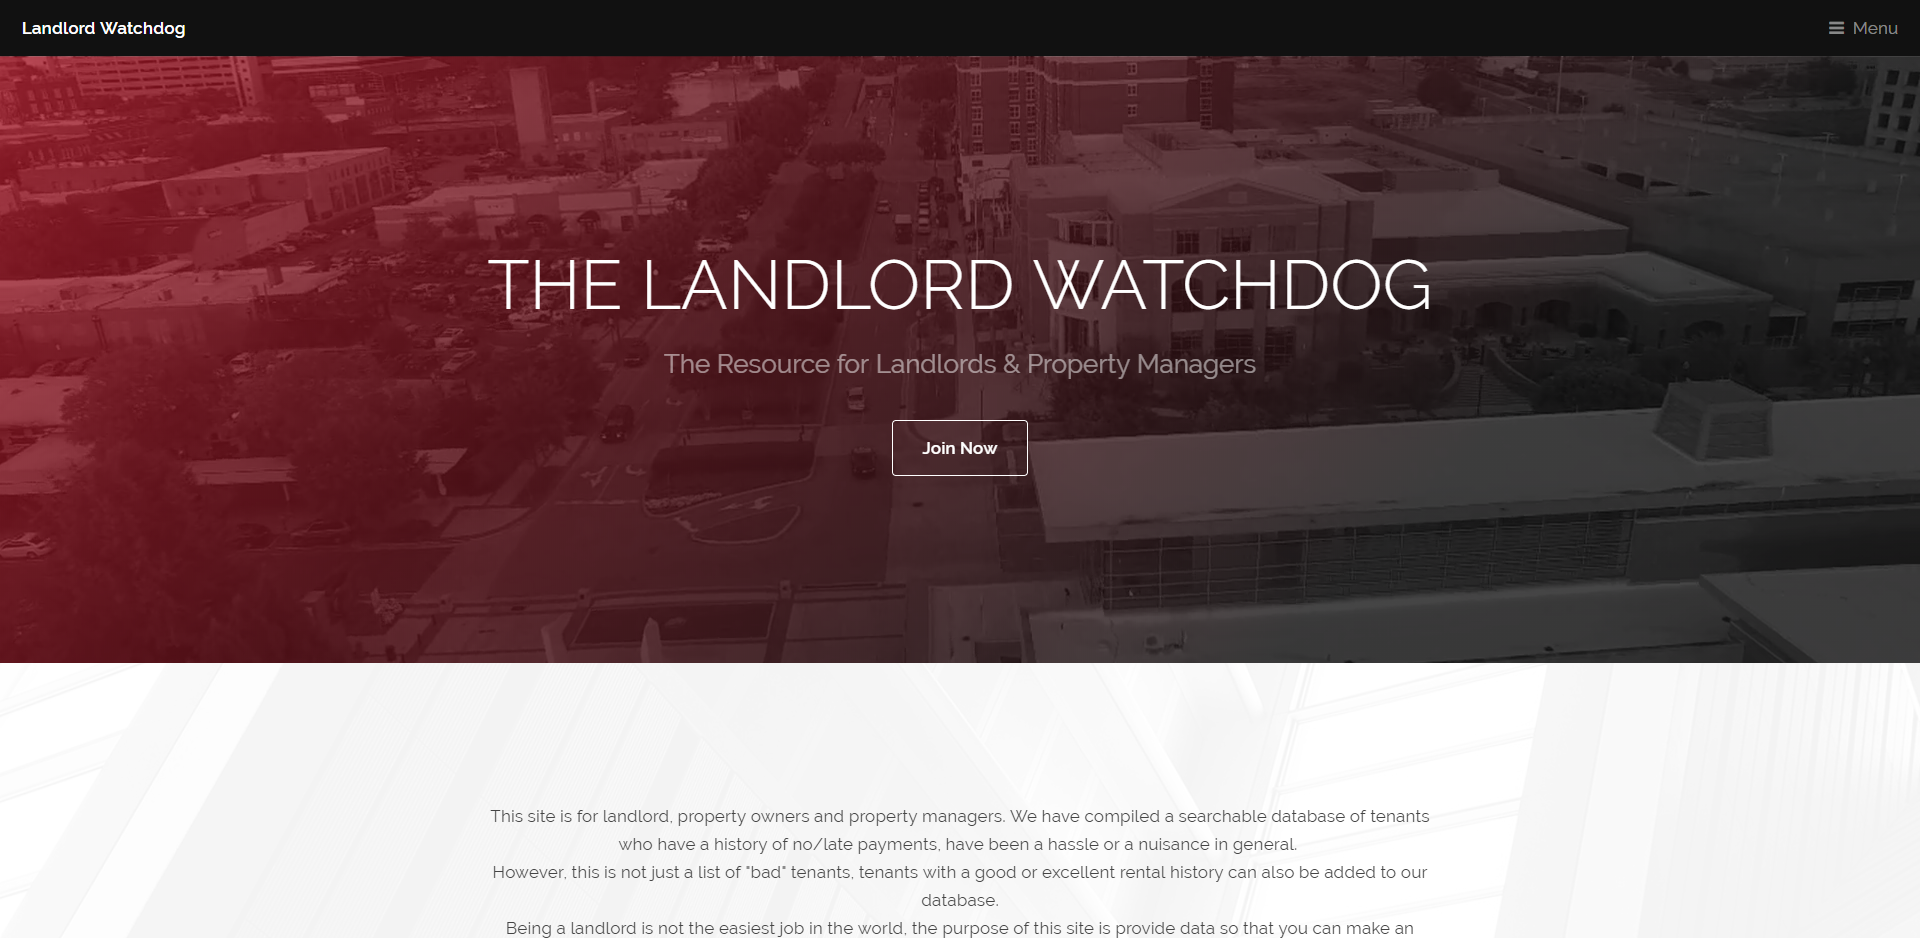 The Landlord Watchdog